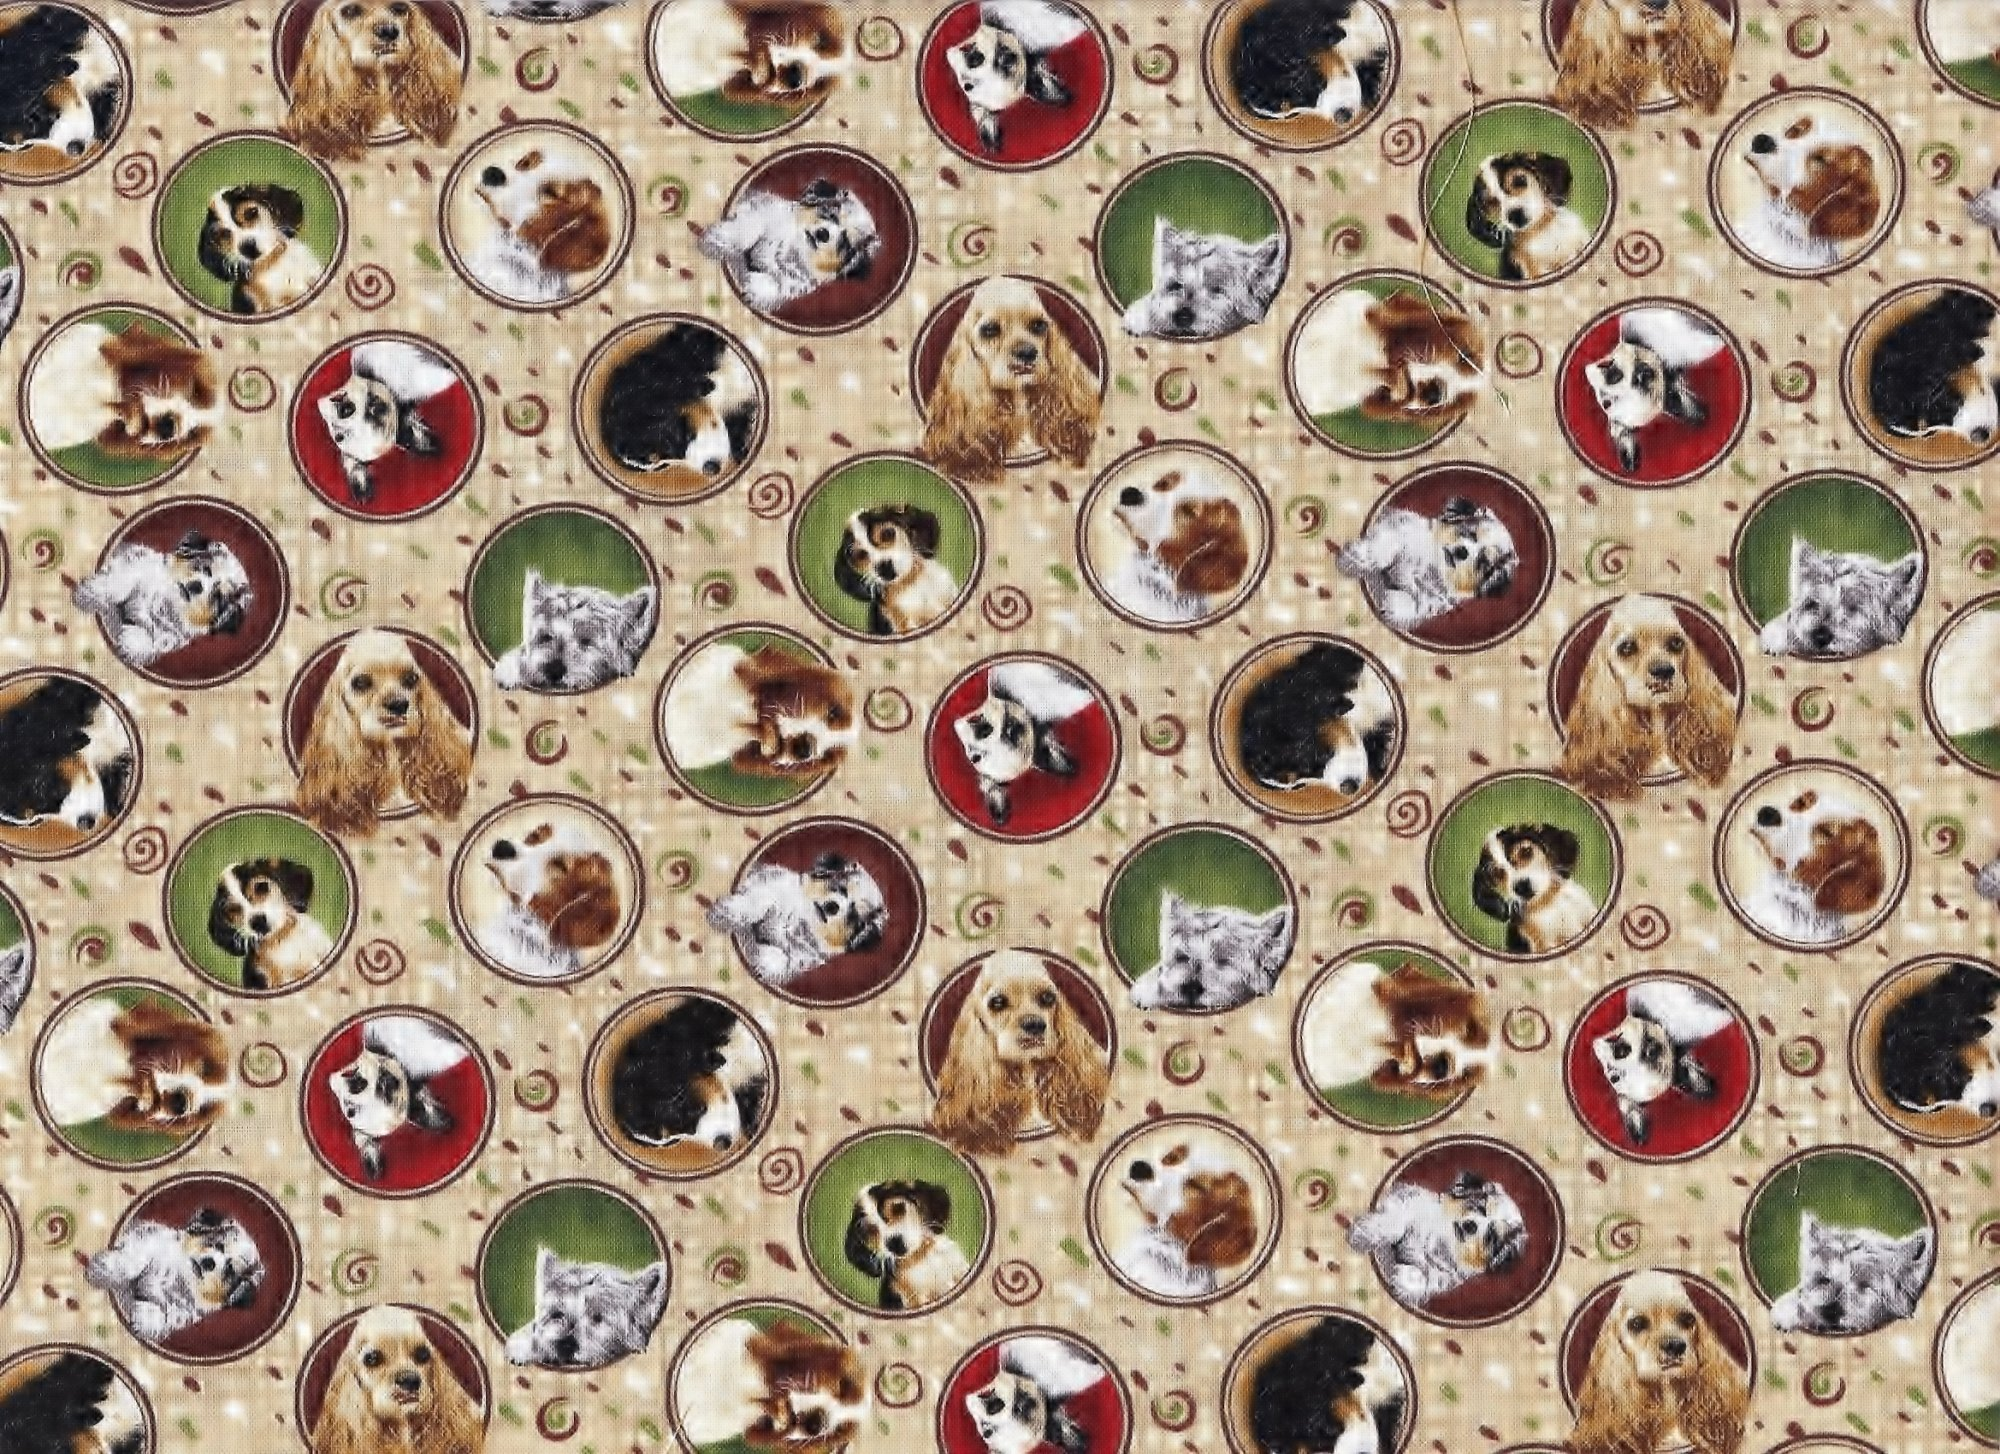 Fabri-Quilt - 4 Paws Stacked Dogs - copy